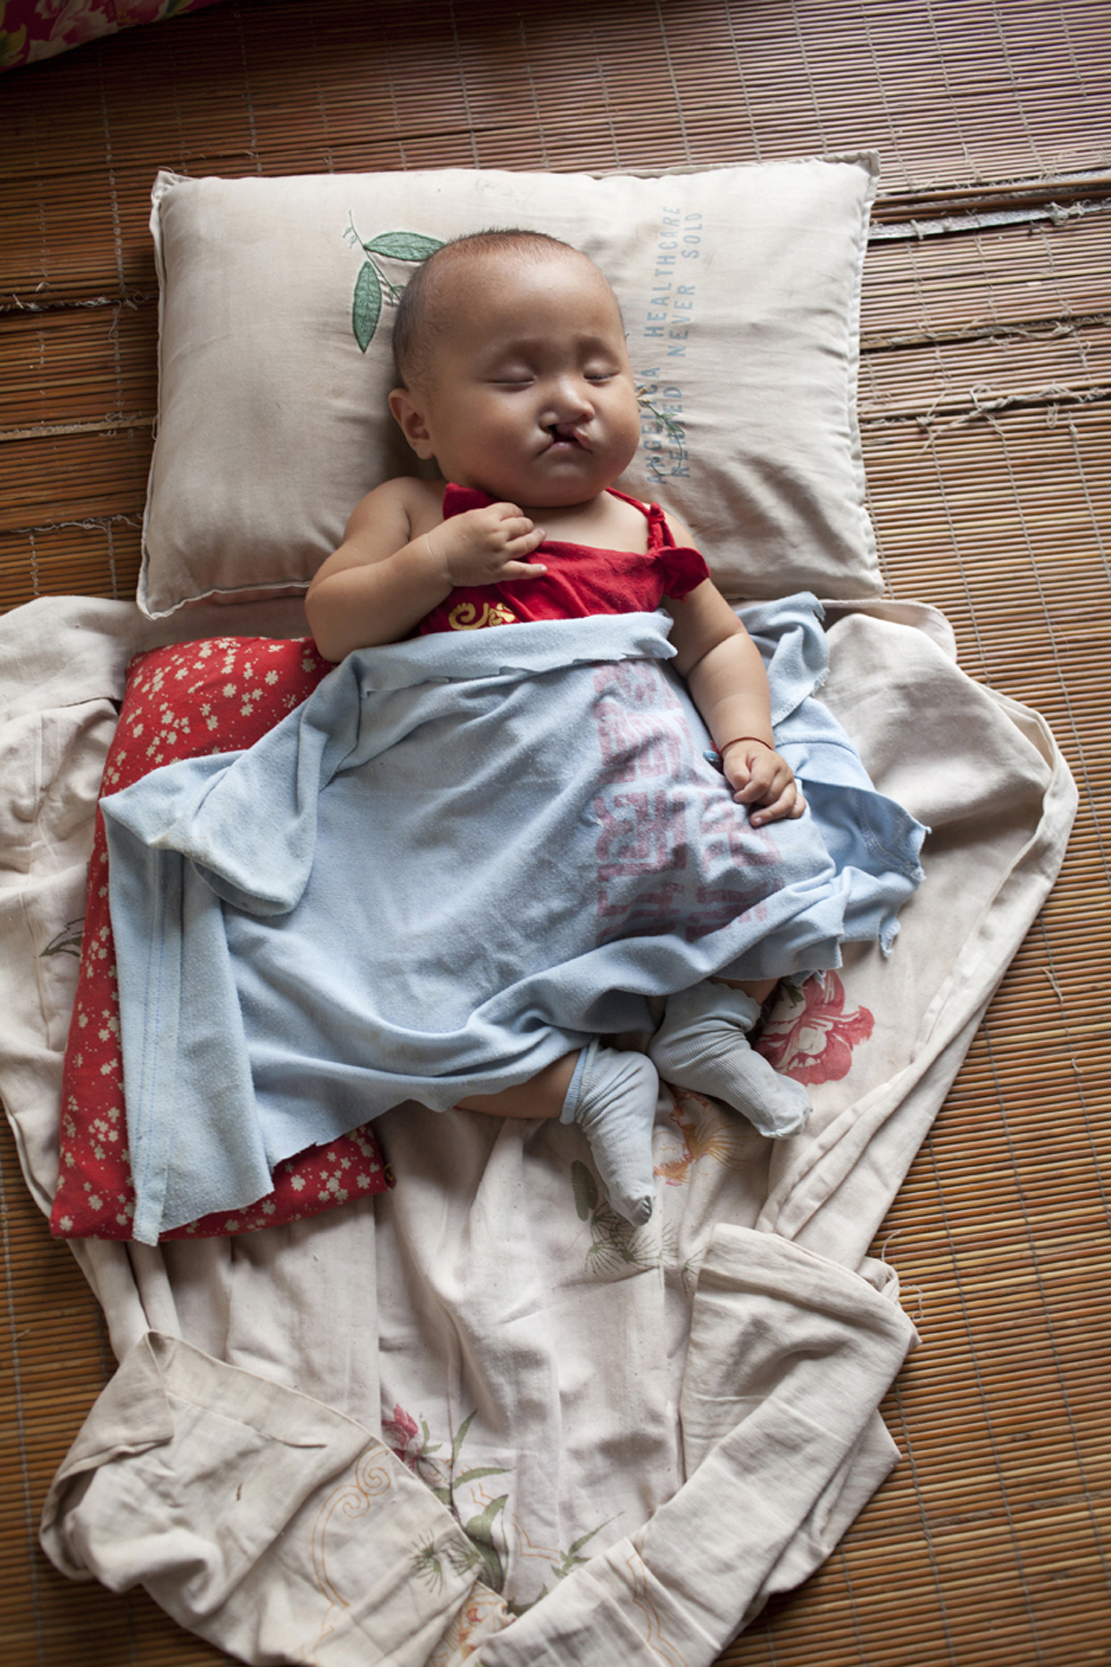 An orphan boy, abandoned in a small village in rural China, begins his journey to repair a cleft palate.